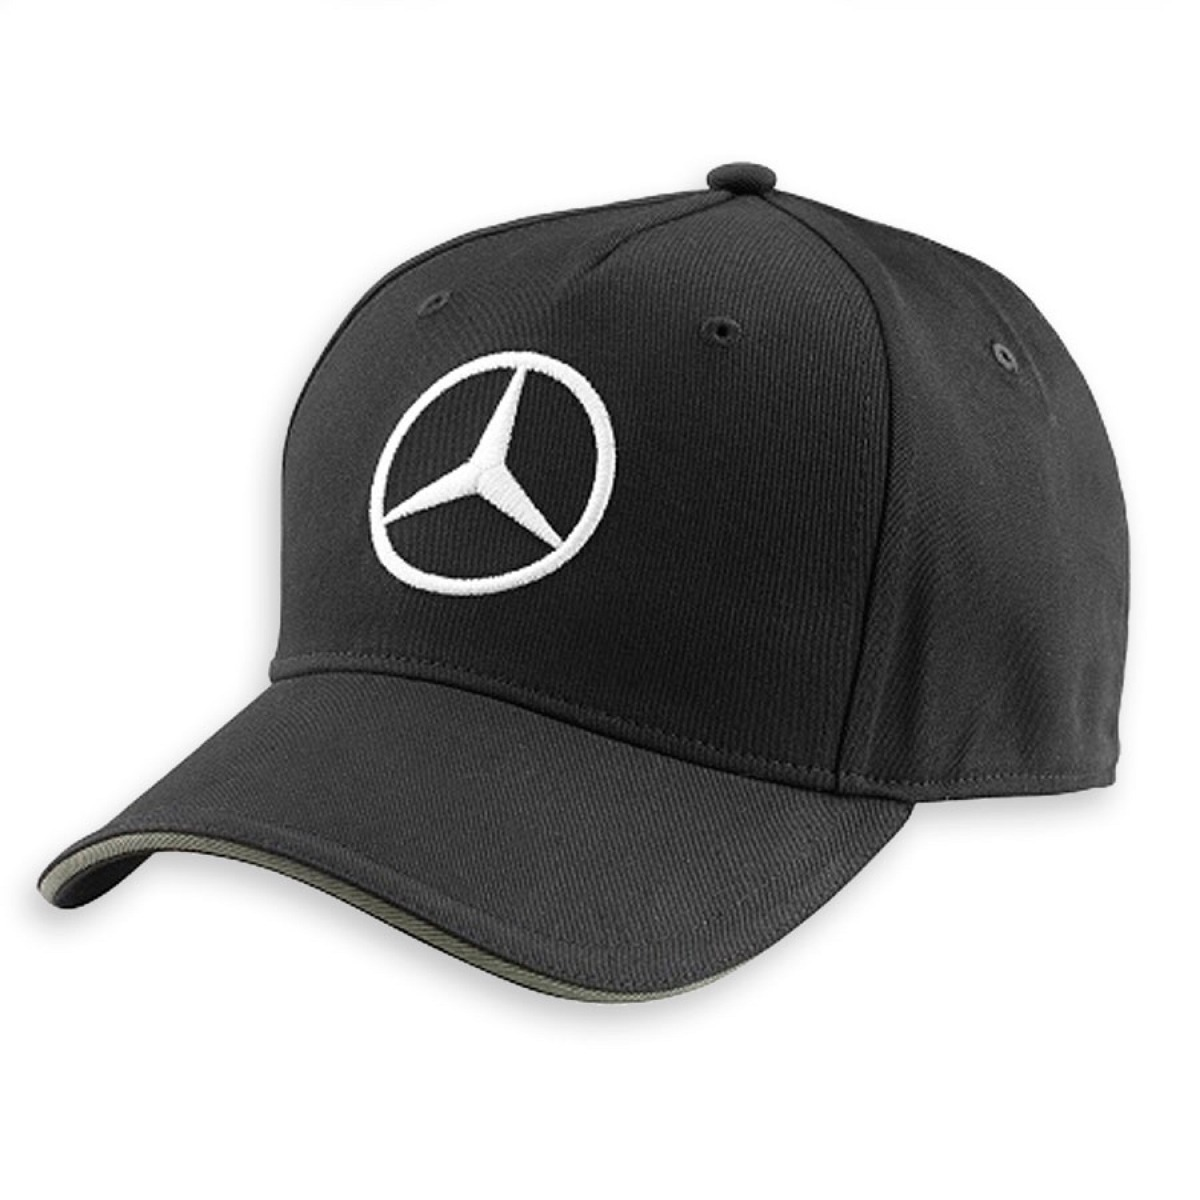 gorra f1 lewis hamilton mercedes amg petronas formula 1 en mercado libre. Black Bedroom Furniture Sets. Home Design Ideas